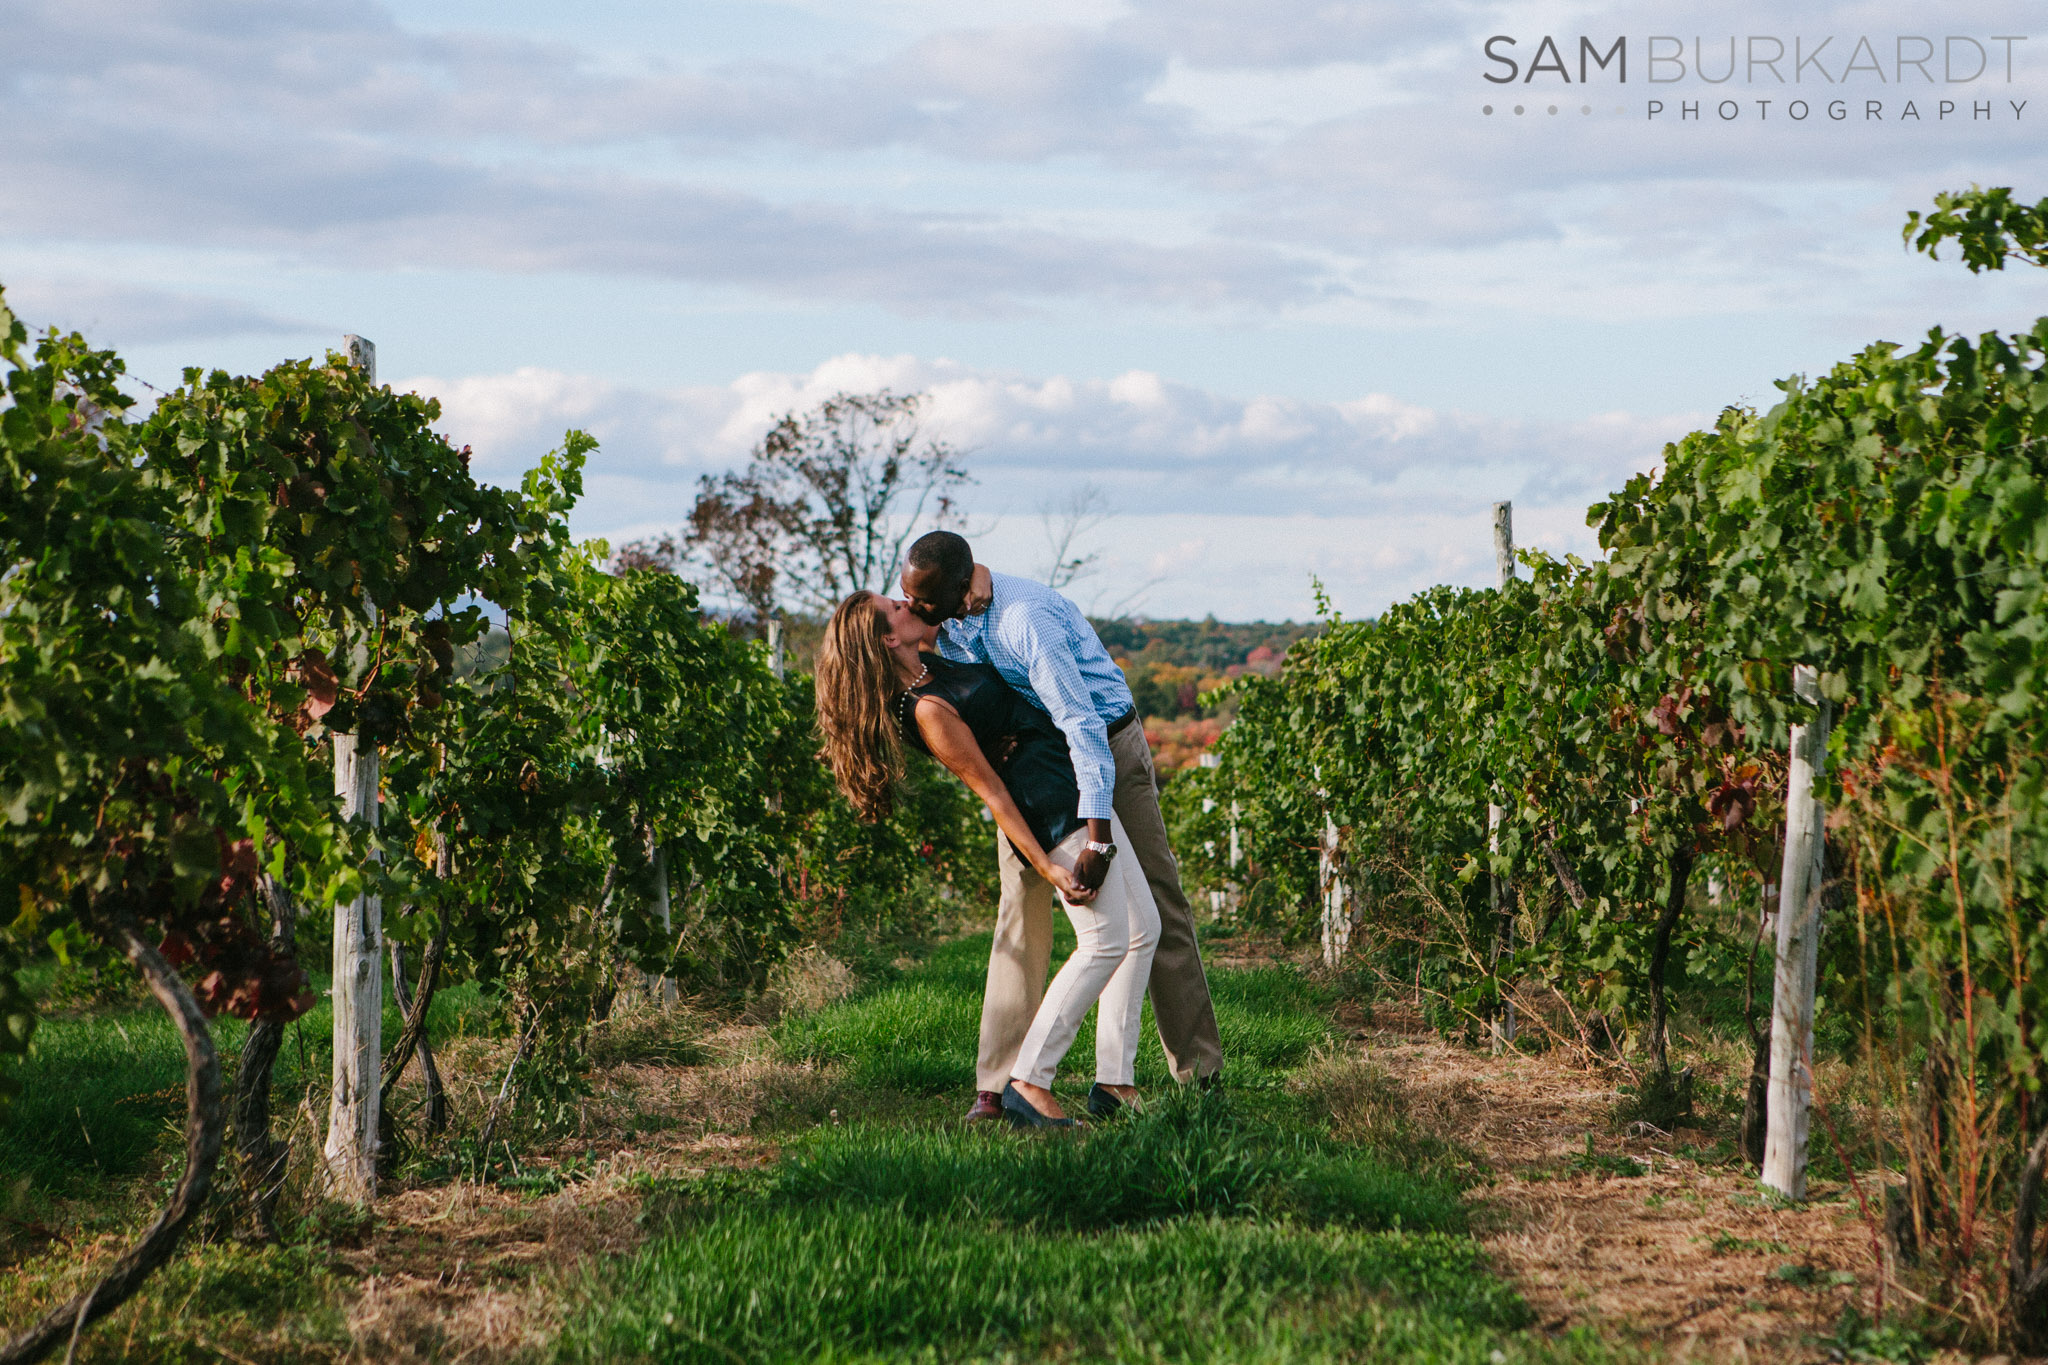 samburkardt-fall-engagement-connecticut-vineyard-nature-wine_0008.jpg